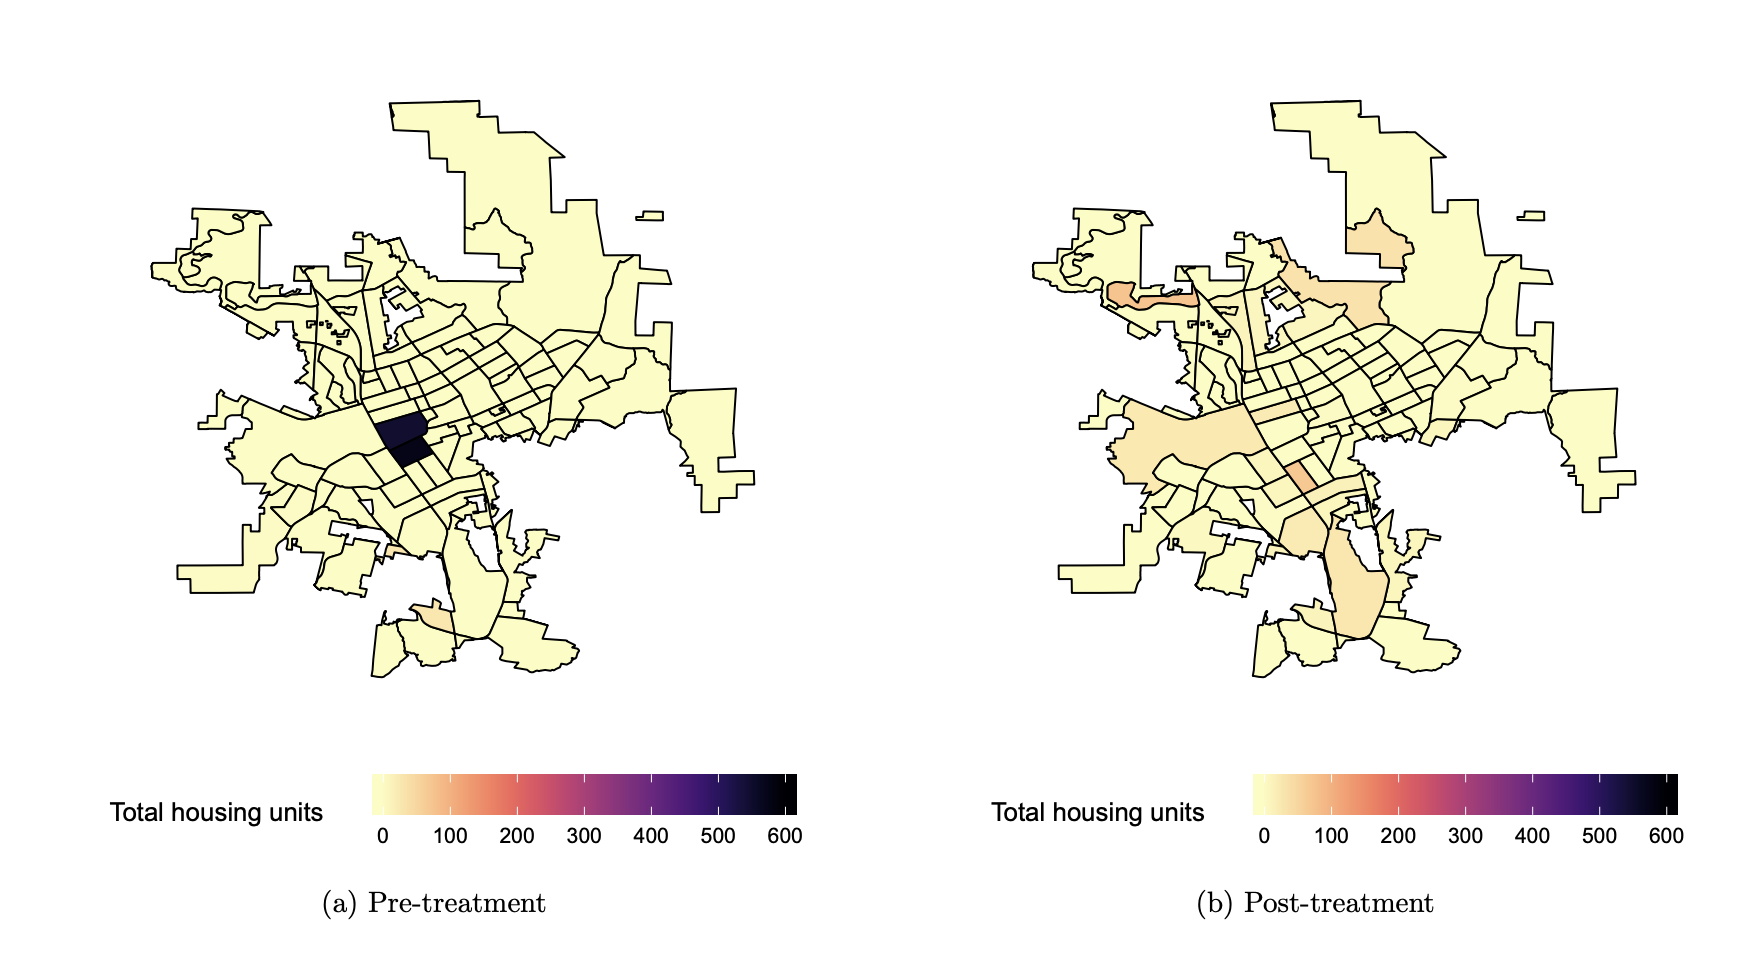 In Escondido, CA, the spatial distribution of new housing approved for construction went from being concentrated in one neighborhood before the reform to being spread equitably across the city afterward.